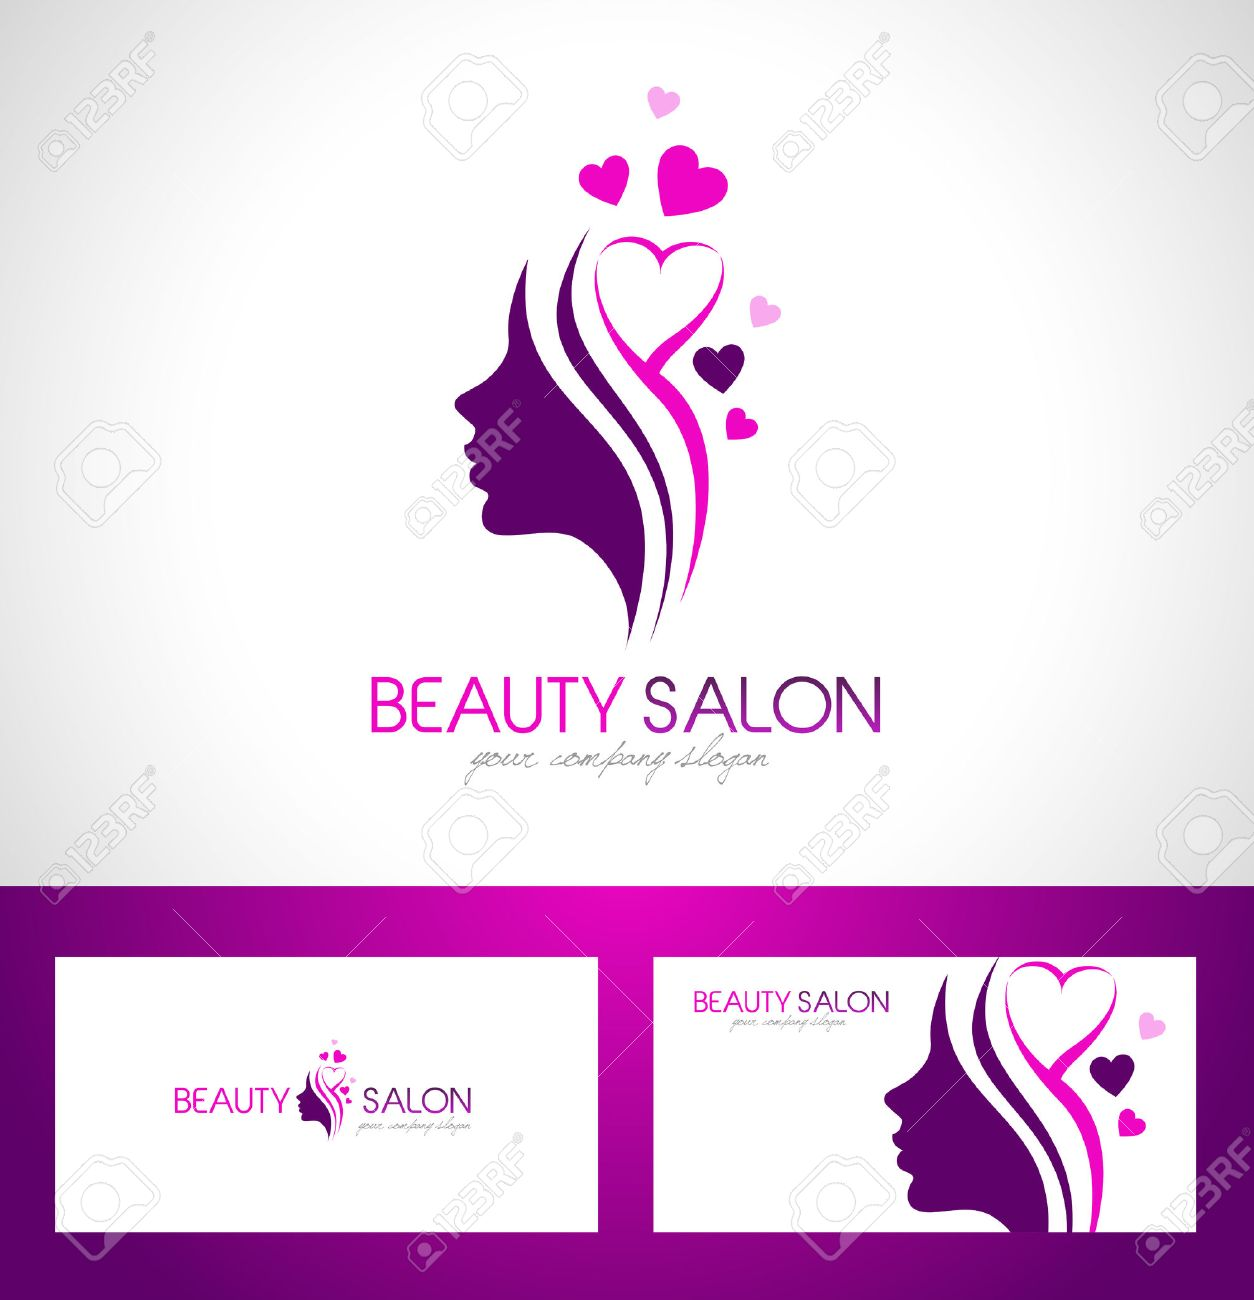 Beauty Female Face Logo Design Cosmetic Salon Logo Design Creative Royalty Free Cliparts Vectors And Stock Illustration Image 45363212